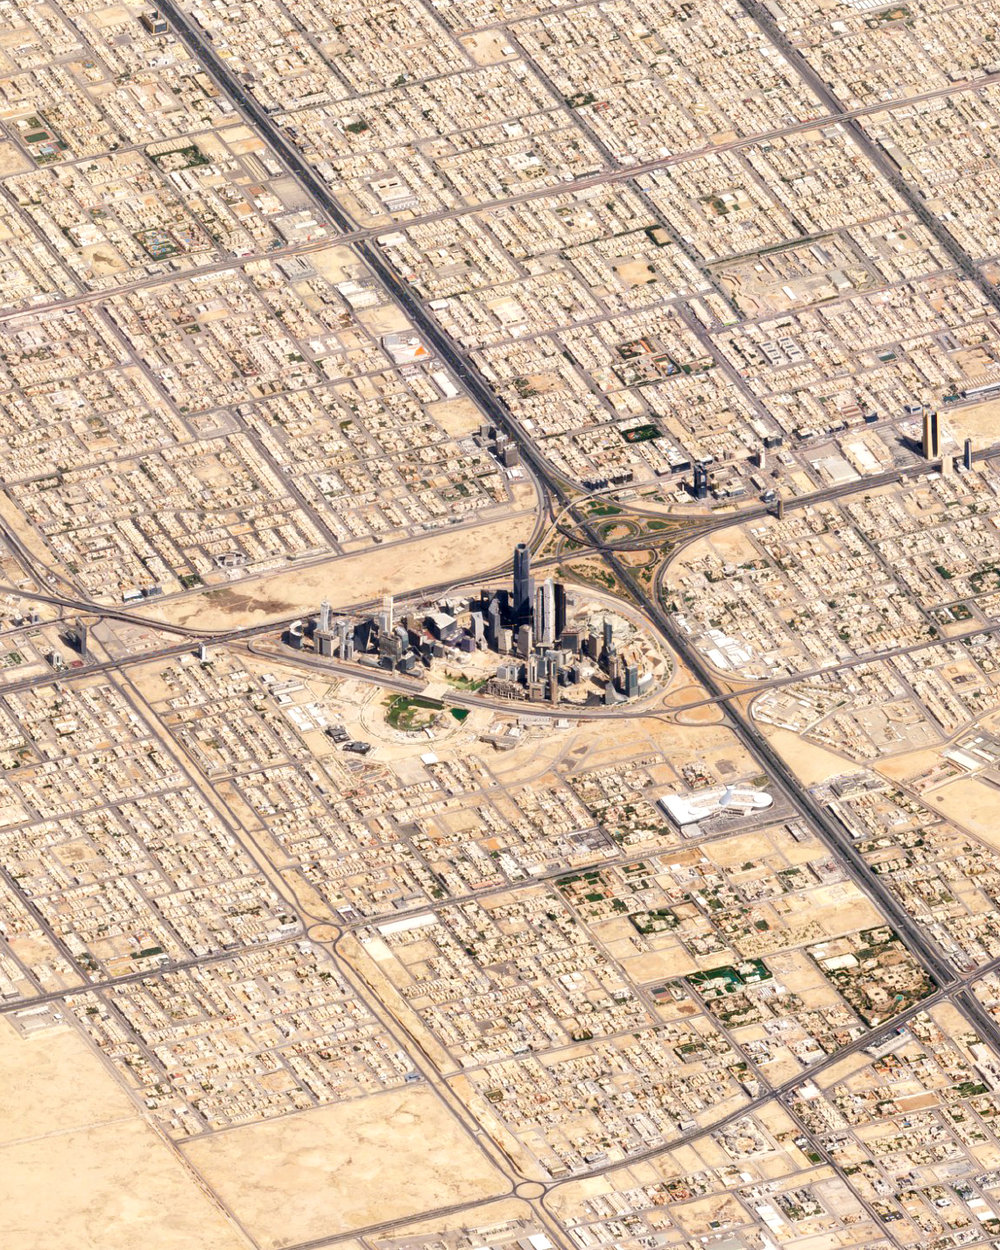 """Check out this amazing view of Riyadh, Saudi Arabia, captured by a Planet satellite at a low angle. Riyadh is Saudi Arabia's capital and most populous city, with more than 7.6 million residents. At the center of this Overview is the King Abdullah Financial District, a $10 billion development project that began in 2006 and is now more than 70% complete.  24°38'00.0""""N, 46°43'00.0""""E  Source imagery: Planet"""